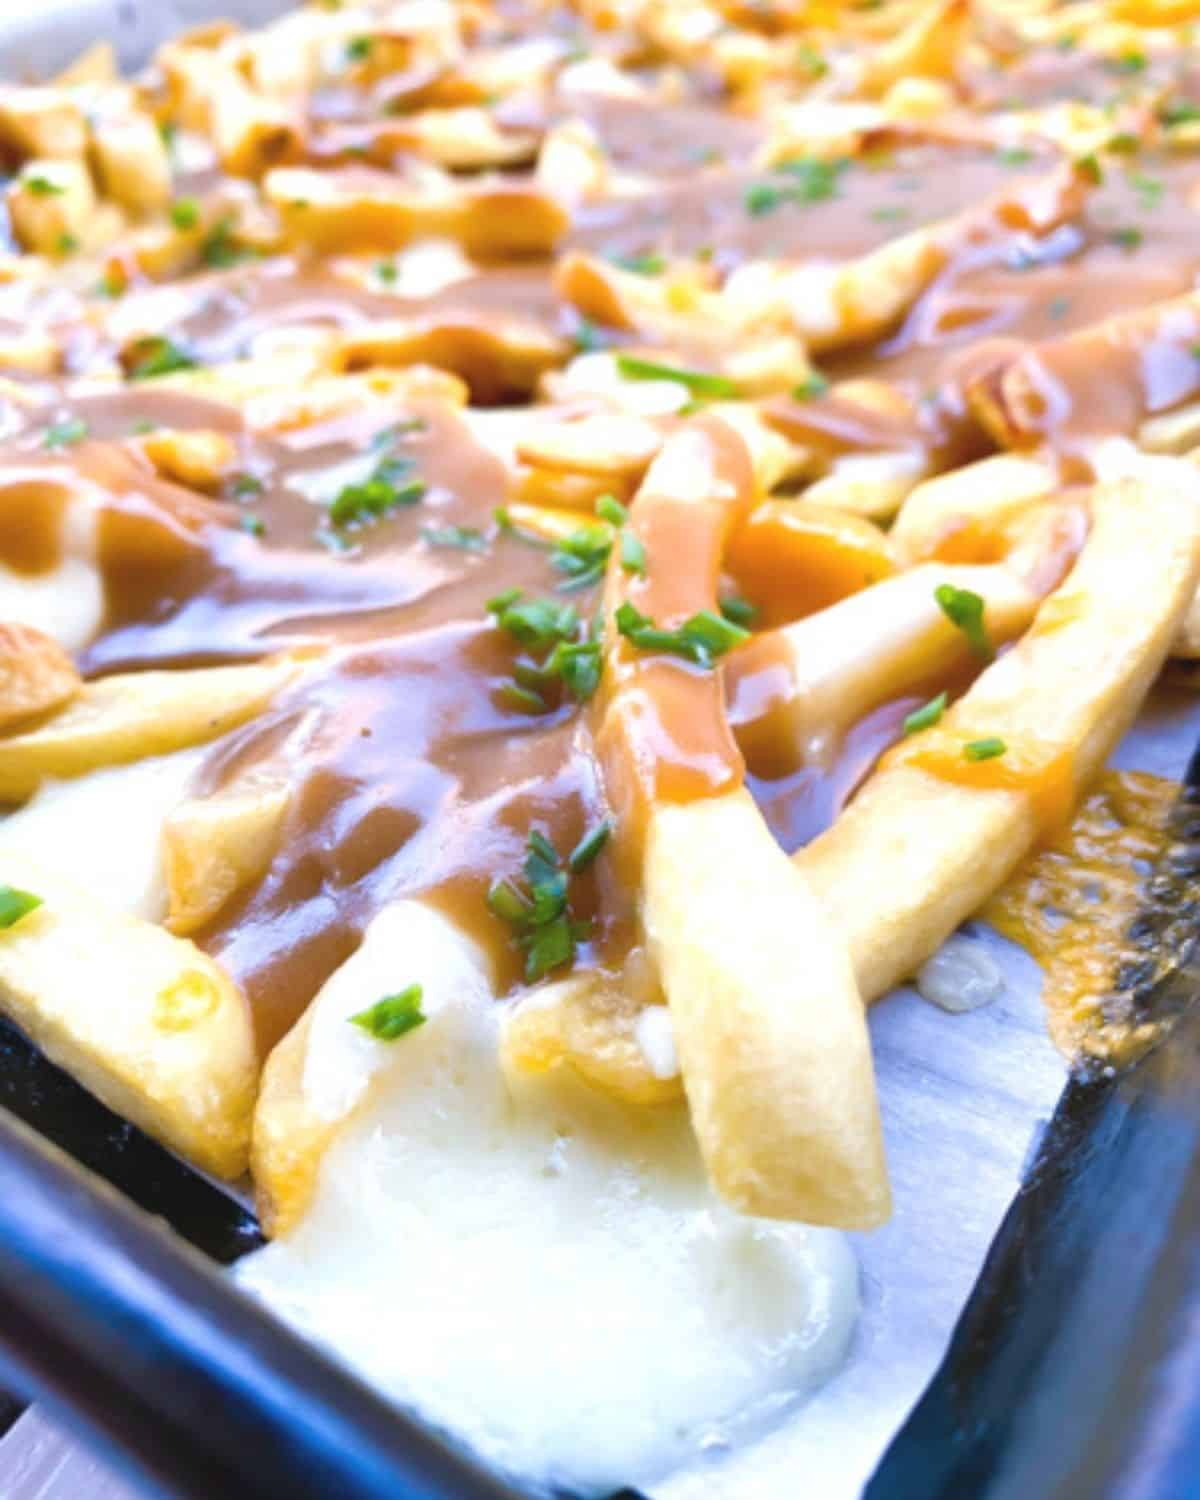 melted mozzarella over fries topped with brown gravy.